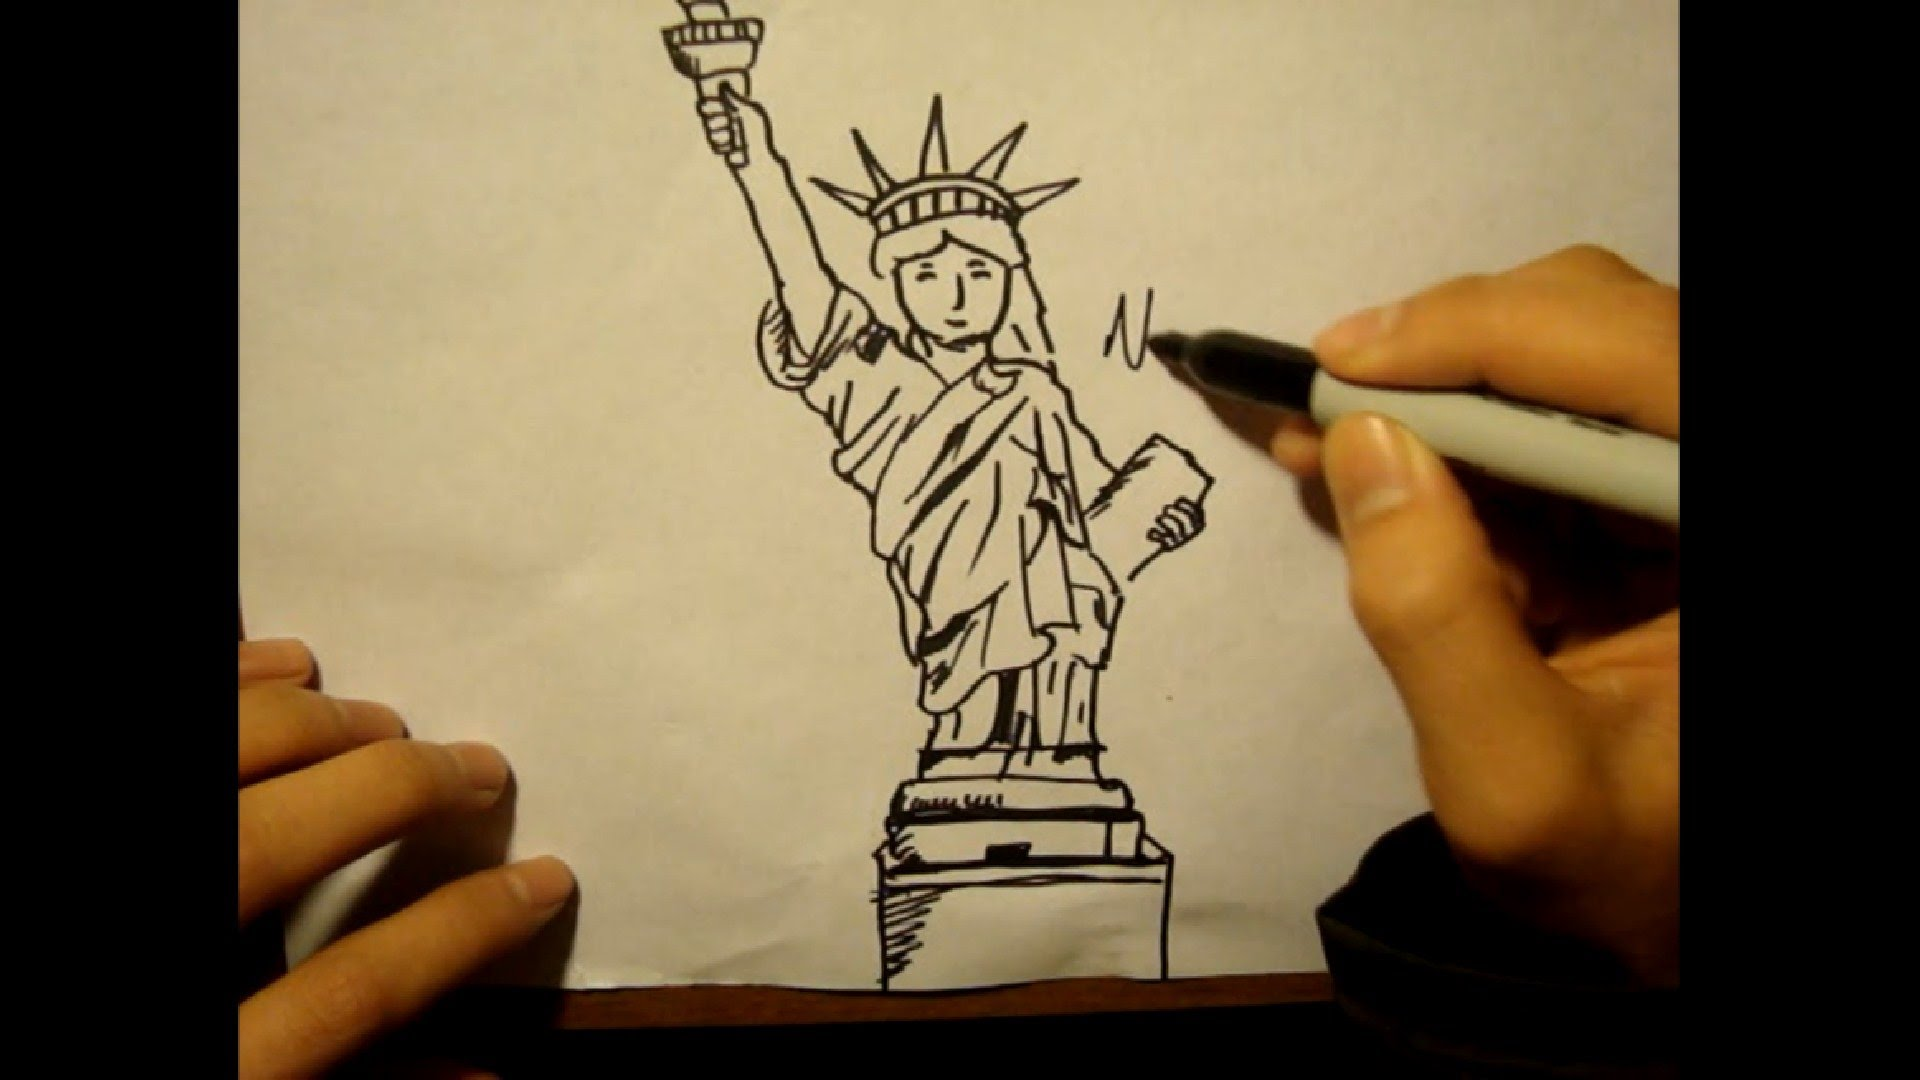 1920x1080 How To Draw Statue Of Libertyfacetorchcartoon Style